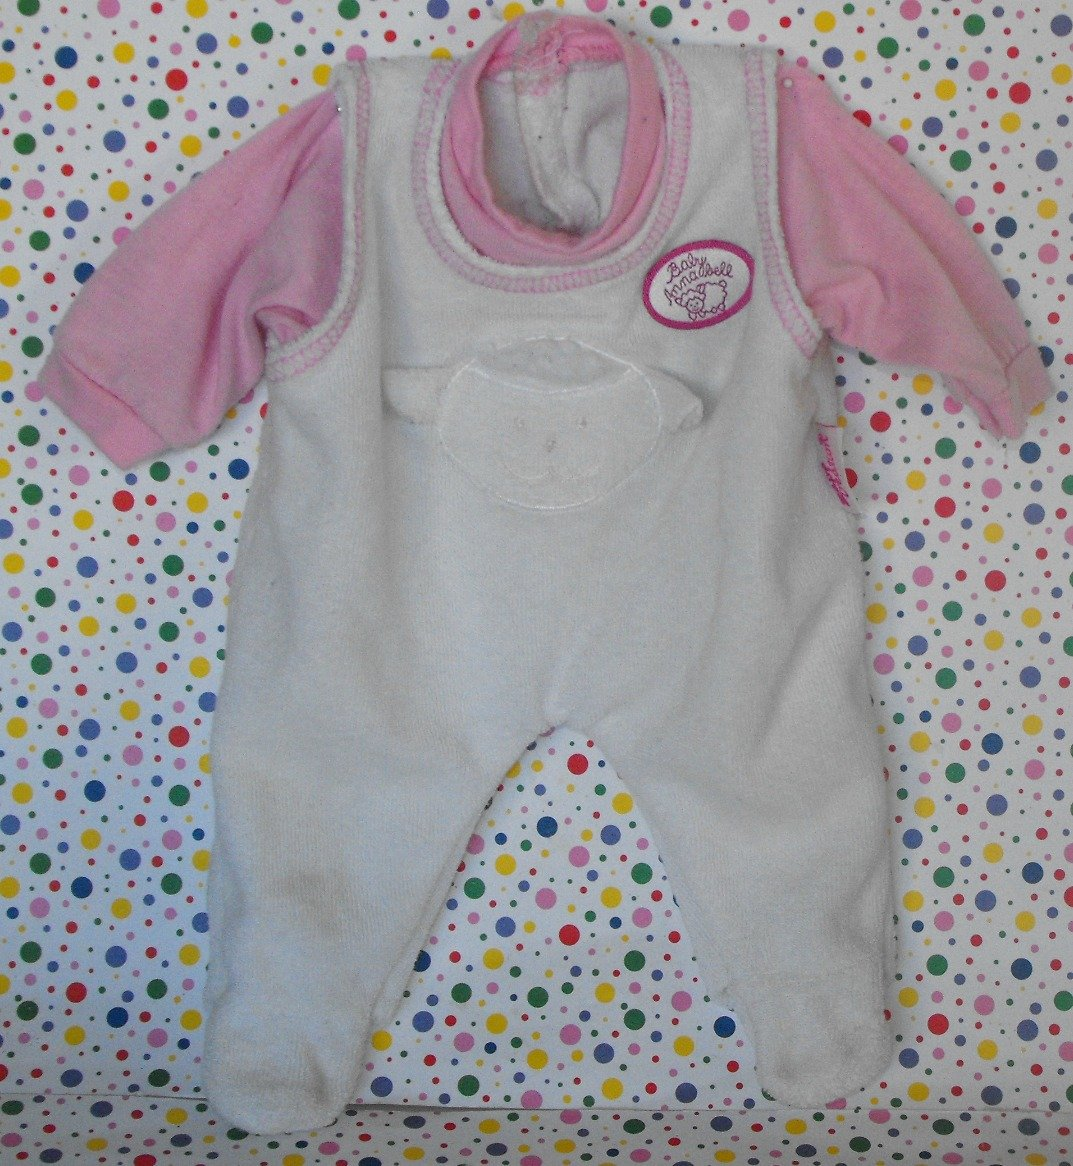 Zapf Creations Baby Annabell Clothes Sleeper Replacement